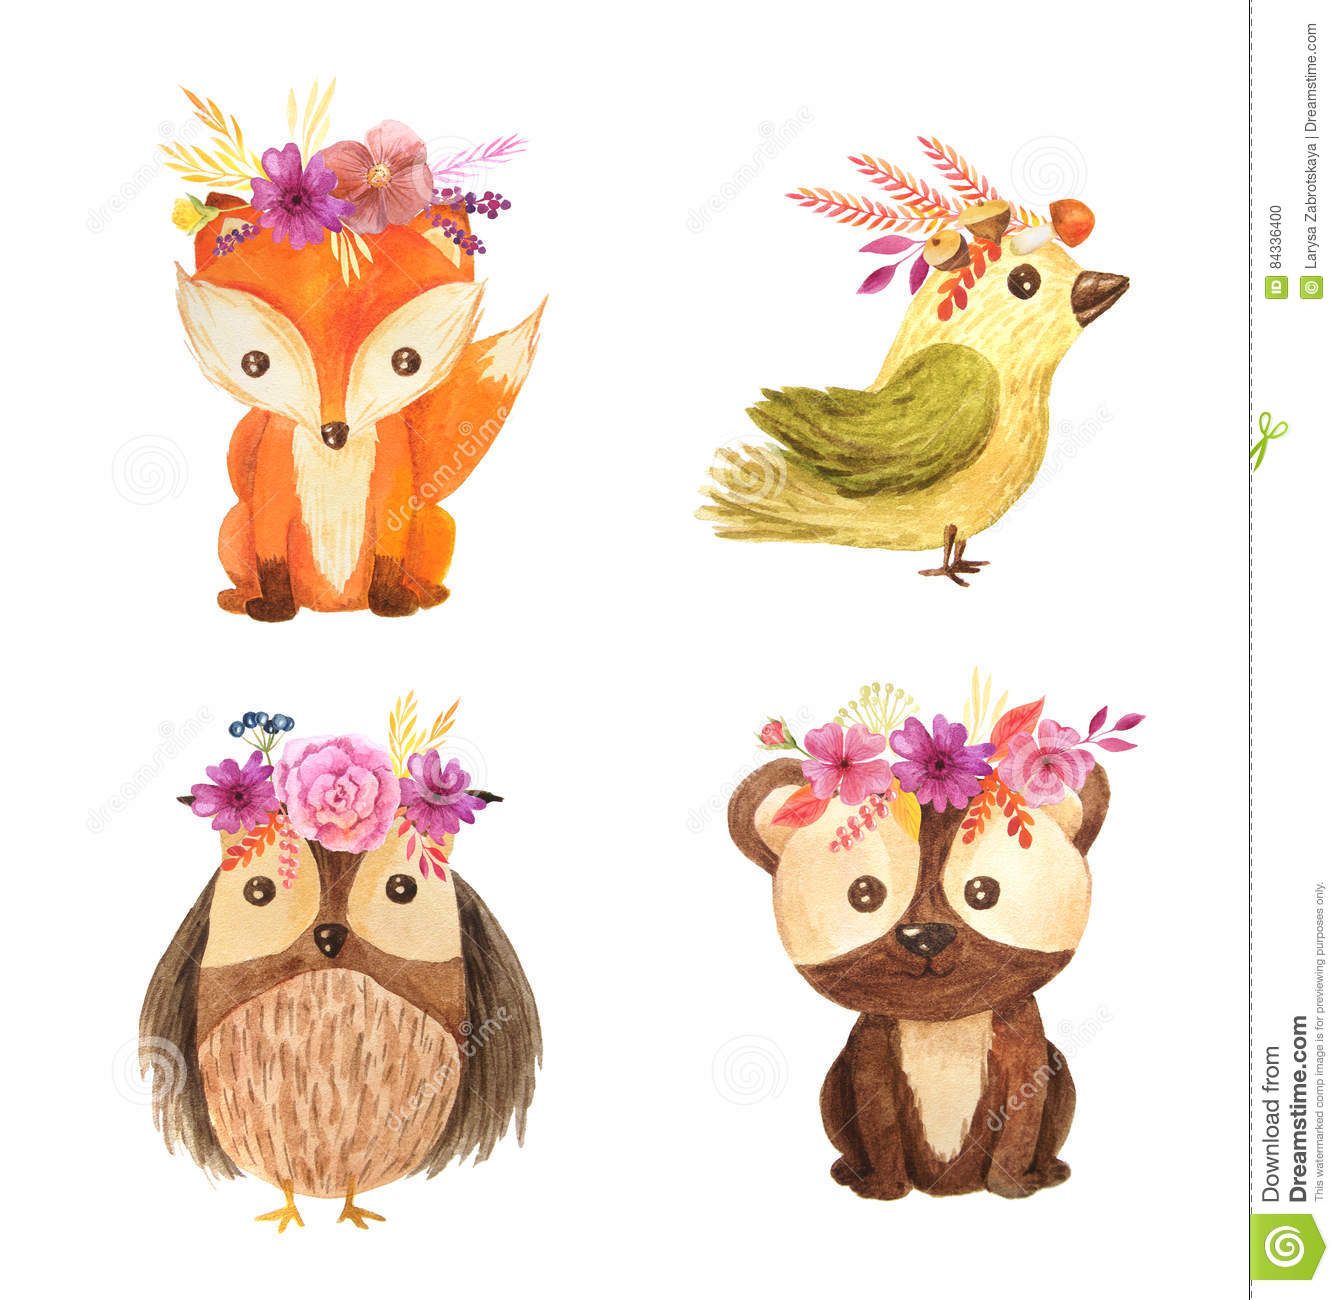 Watercolor Forest Animal Children Illustration Stock